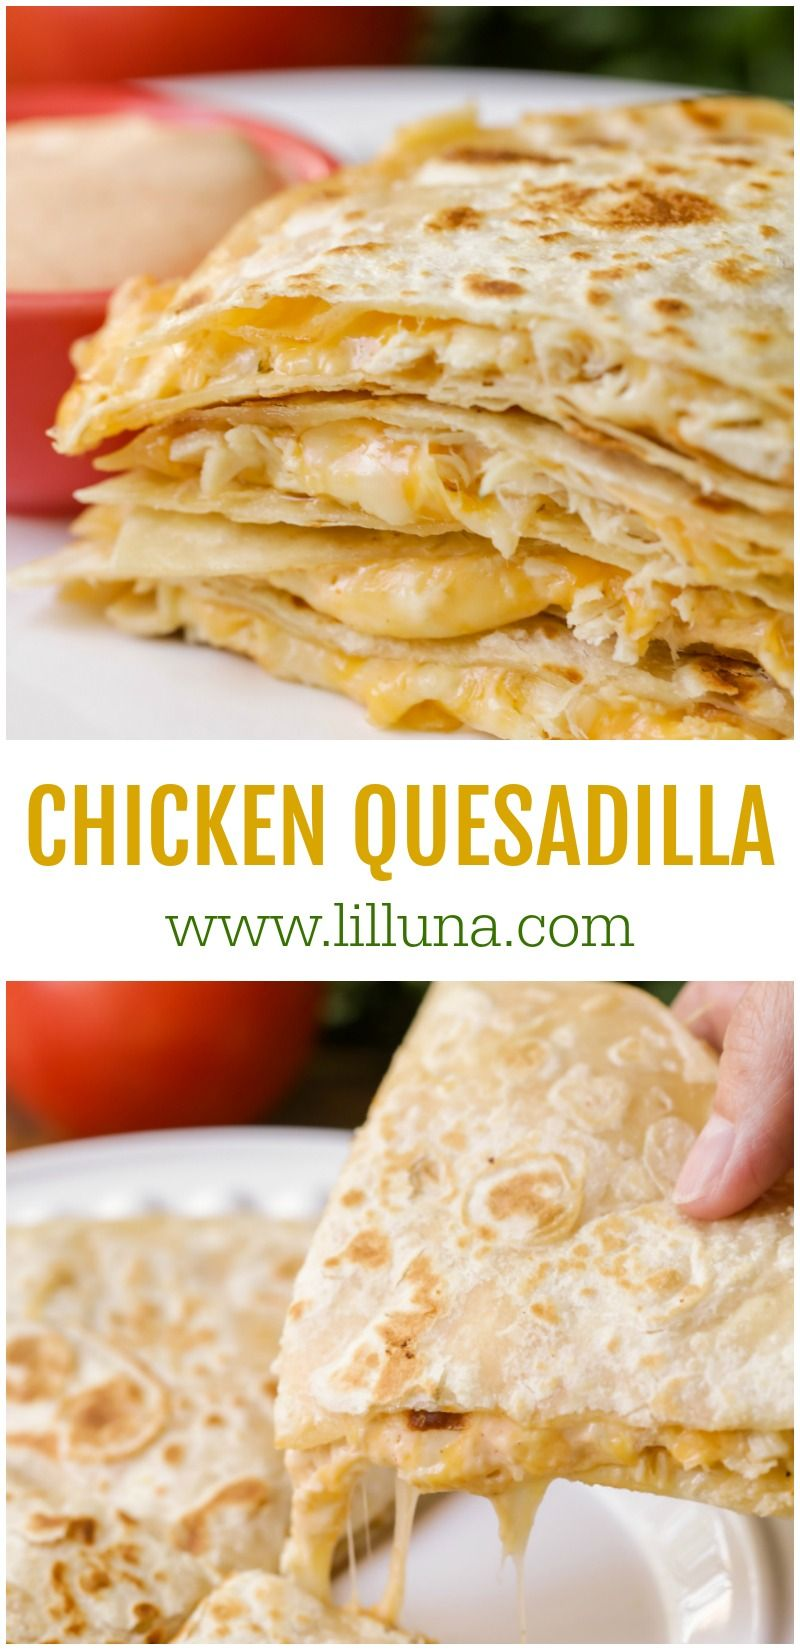 Chicken Quesadilla Recipe Quesidilla Recipes Cheesy Recipes